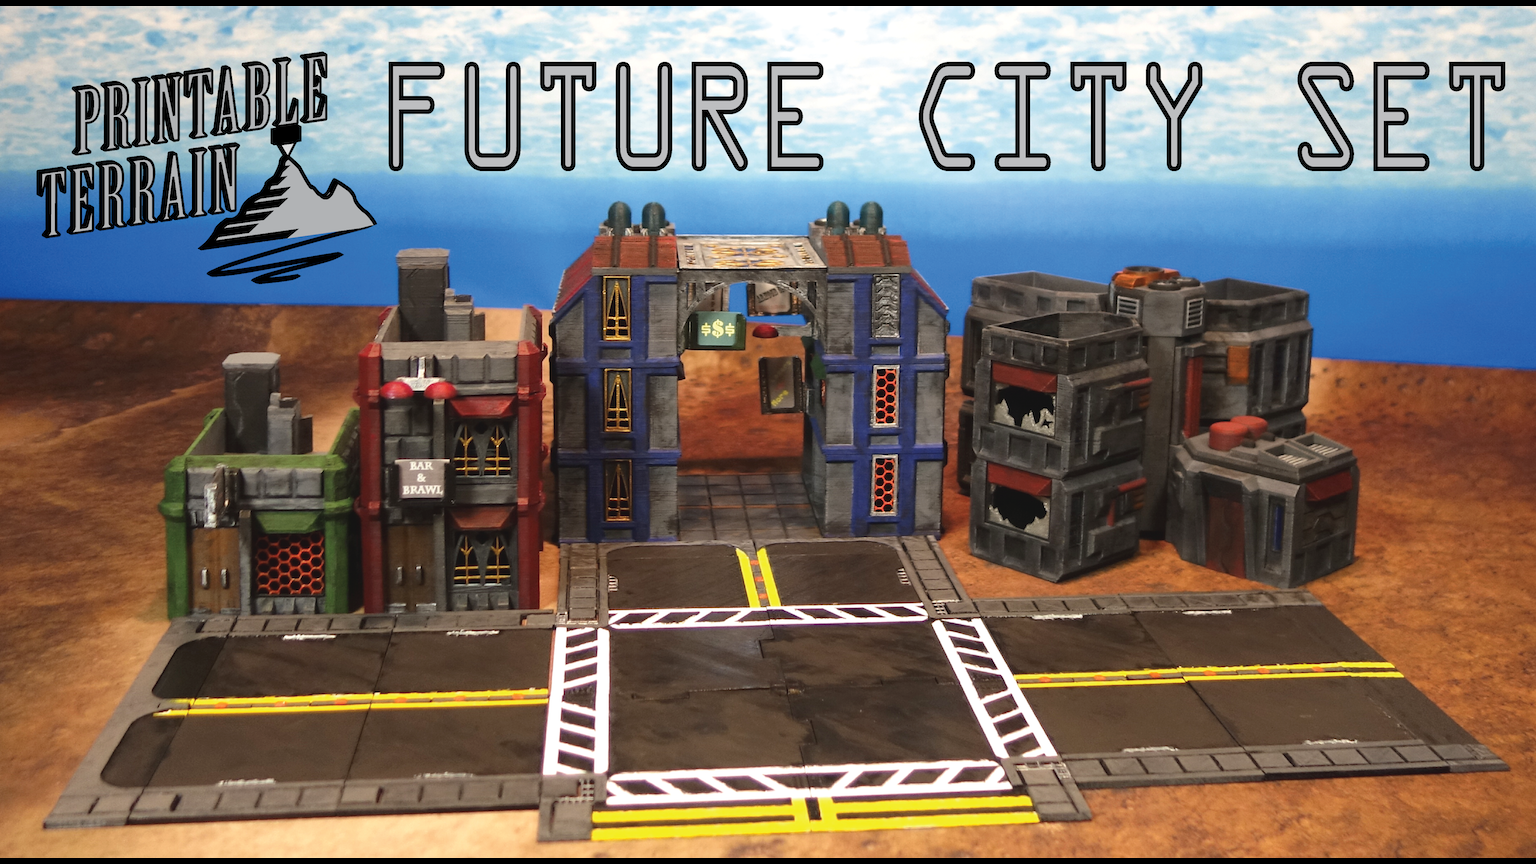 Printable Terrain Future City For Wargames And Rpg S By